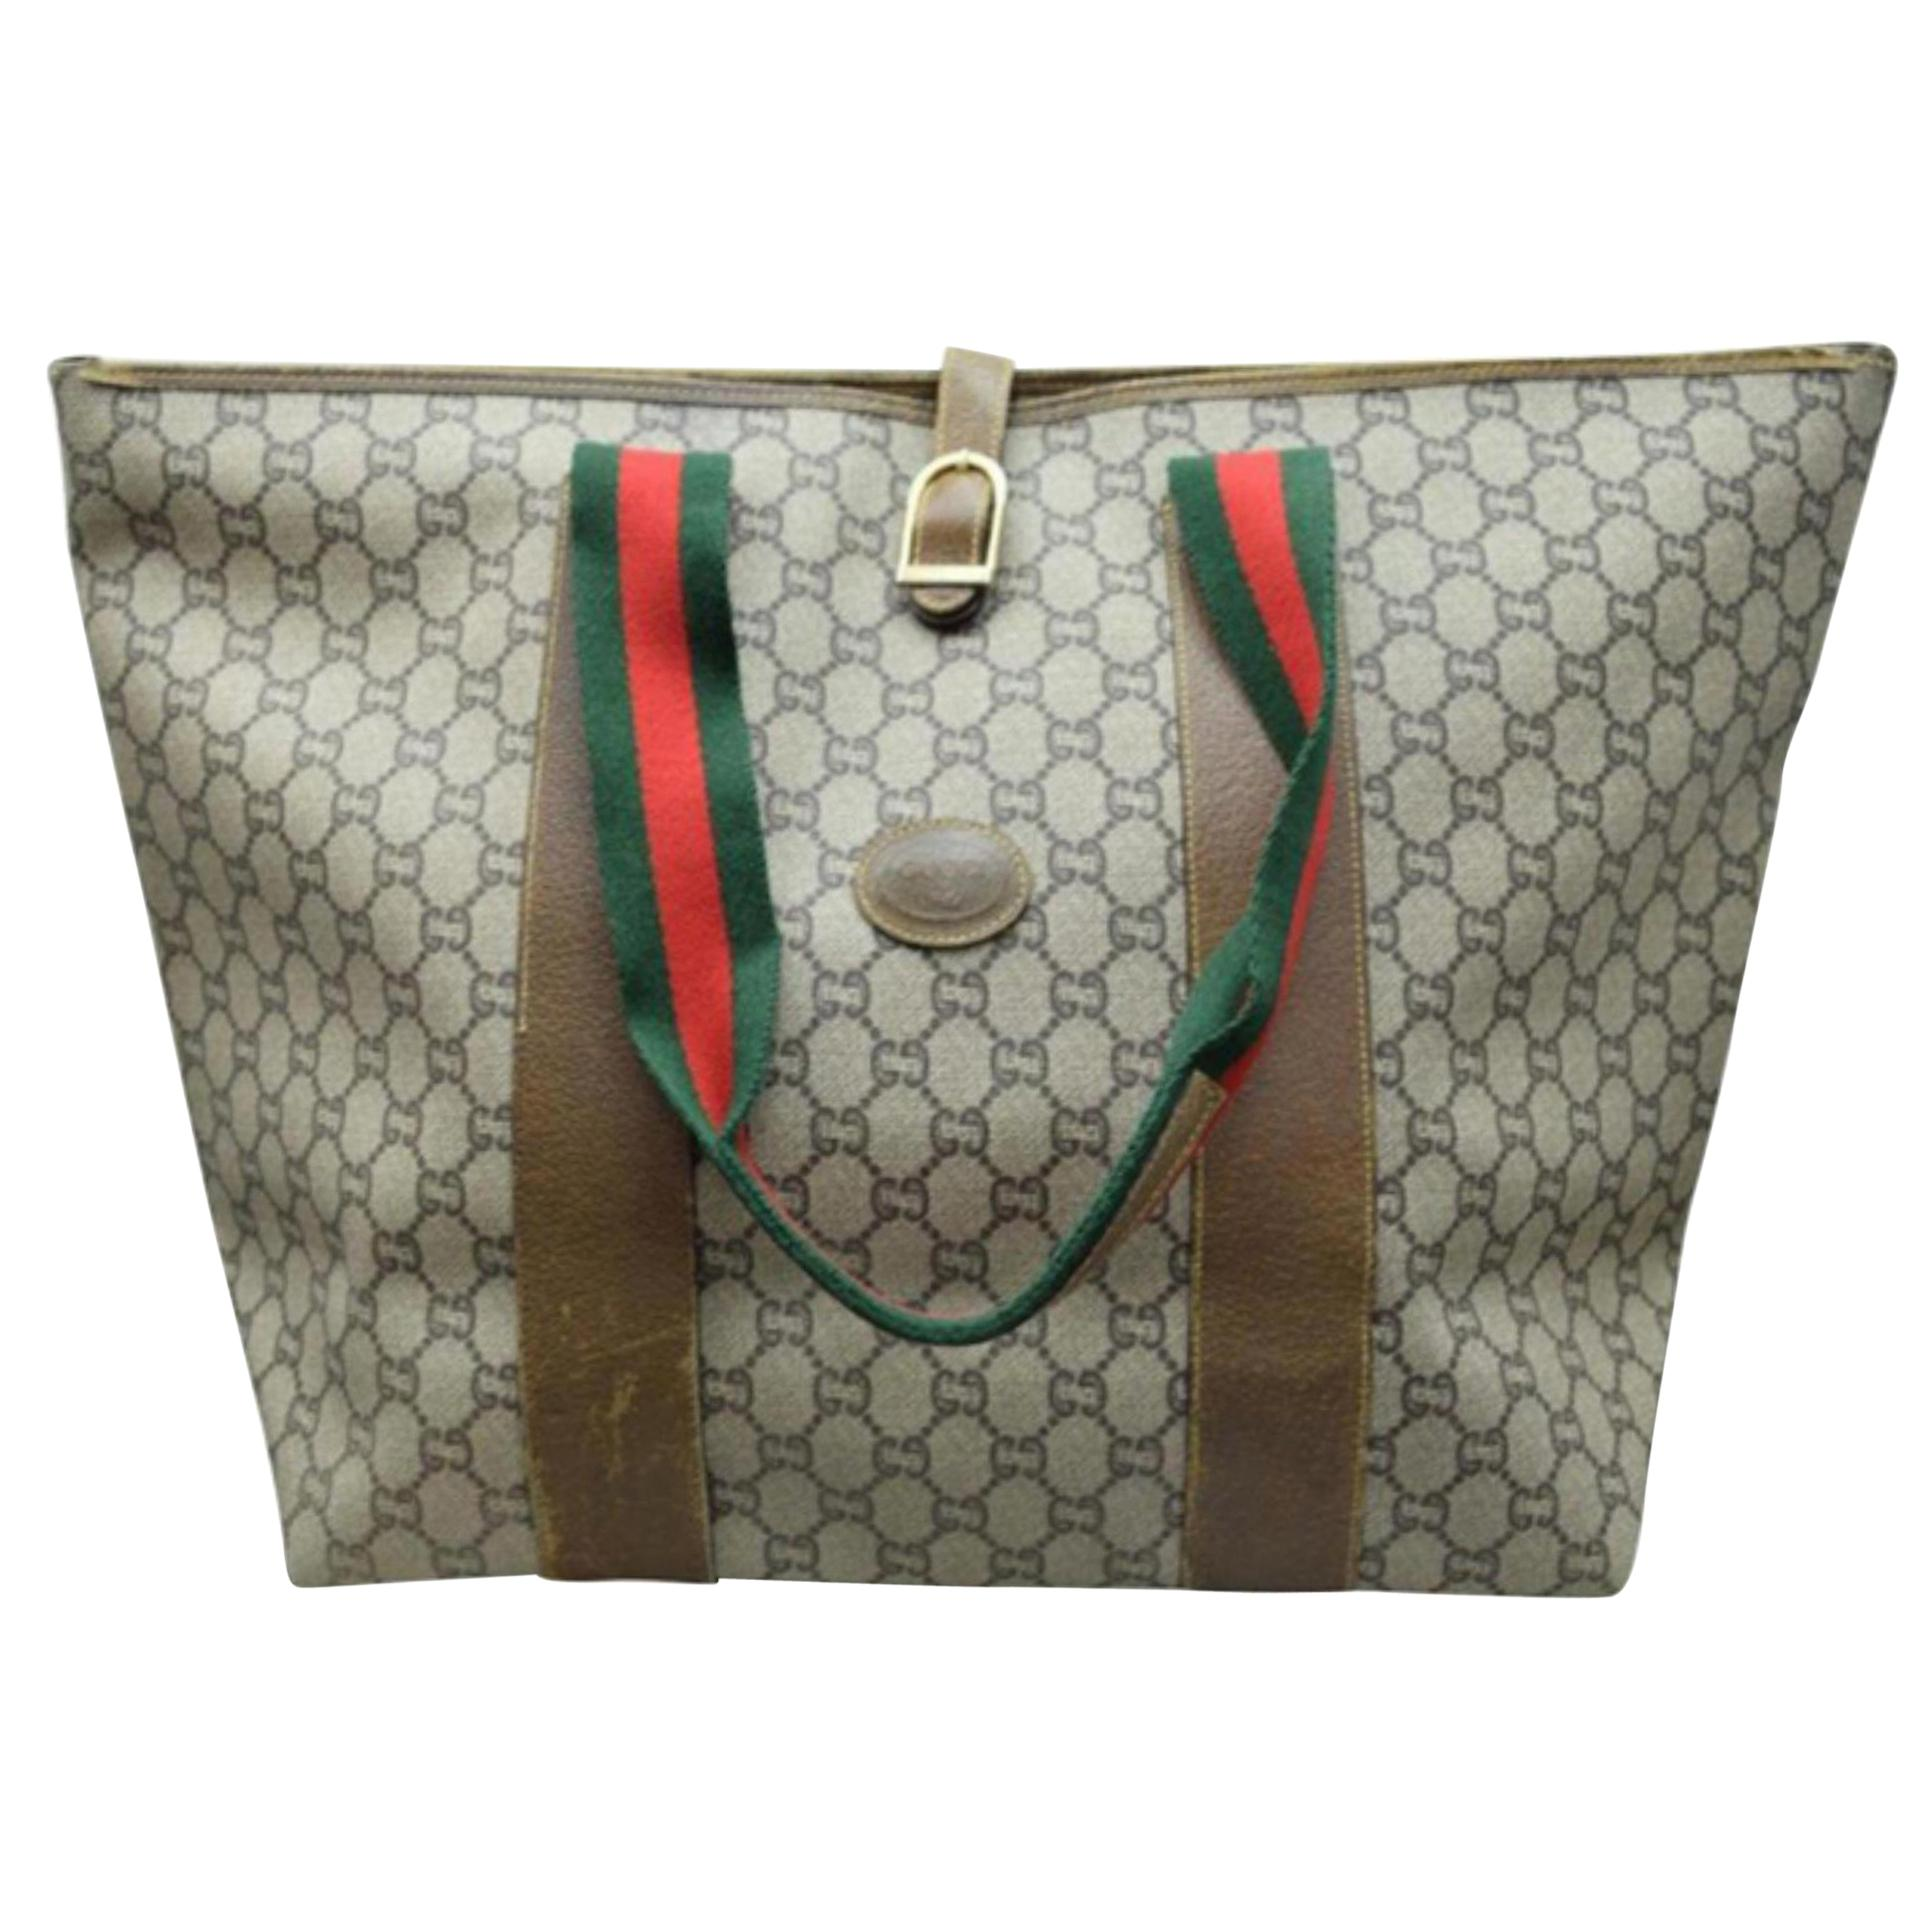 1dadca80b9c9 Vintage Gucci: Clothing, Bags & More - 4,097 For Sale at 1stdibs - Page 3